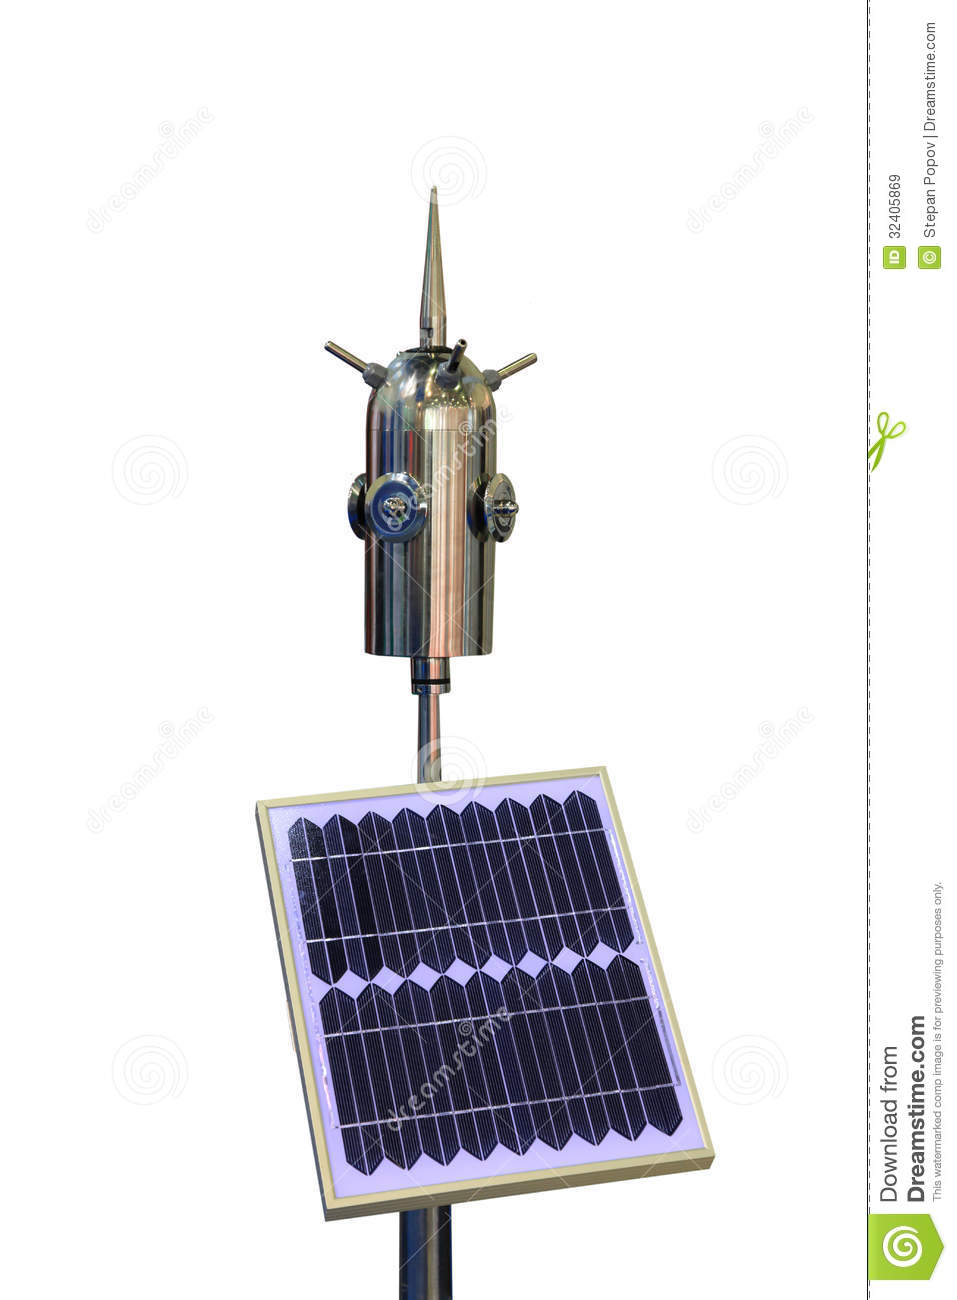 Use Electric Measuring Devices : Instrument for measuring atmospheric electricity royalty